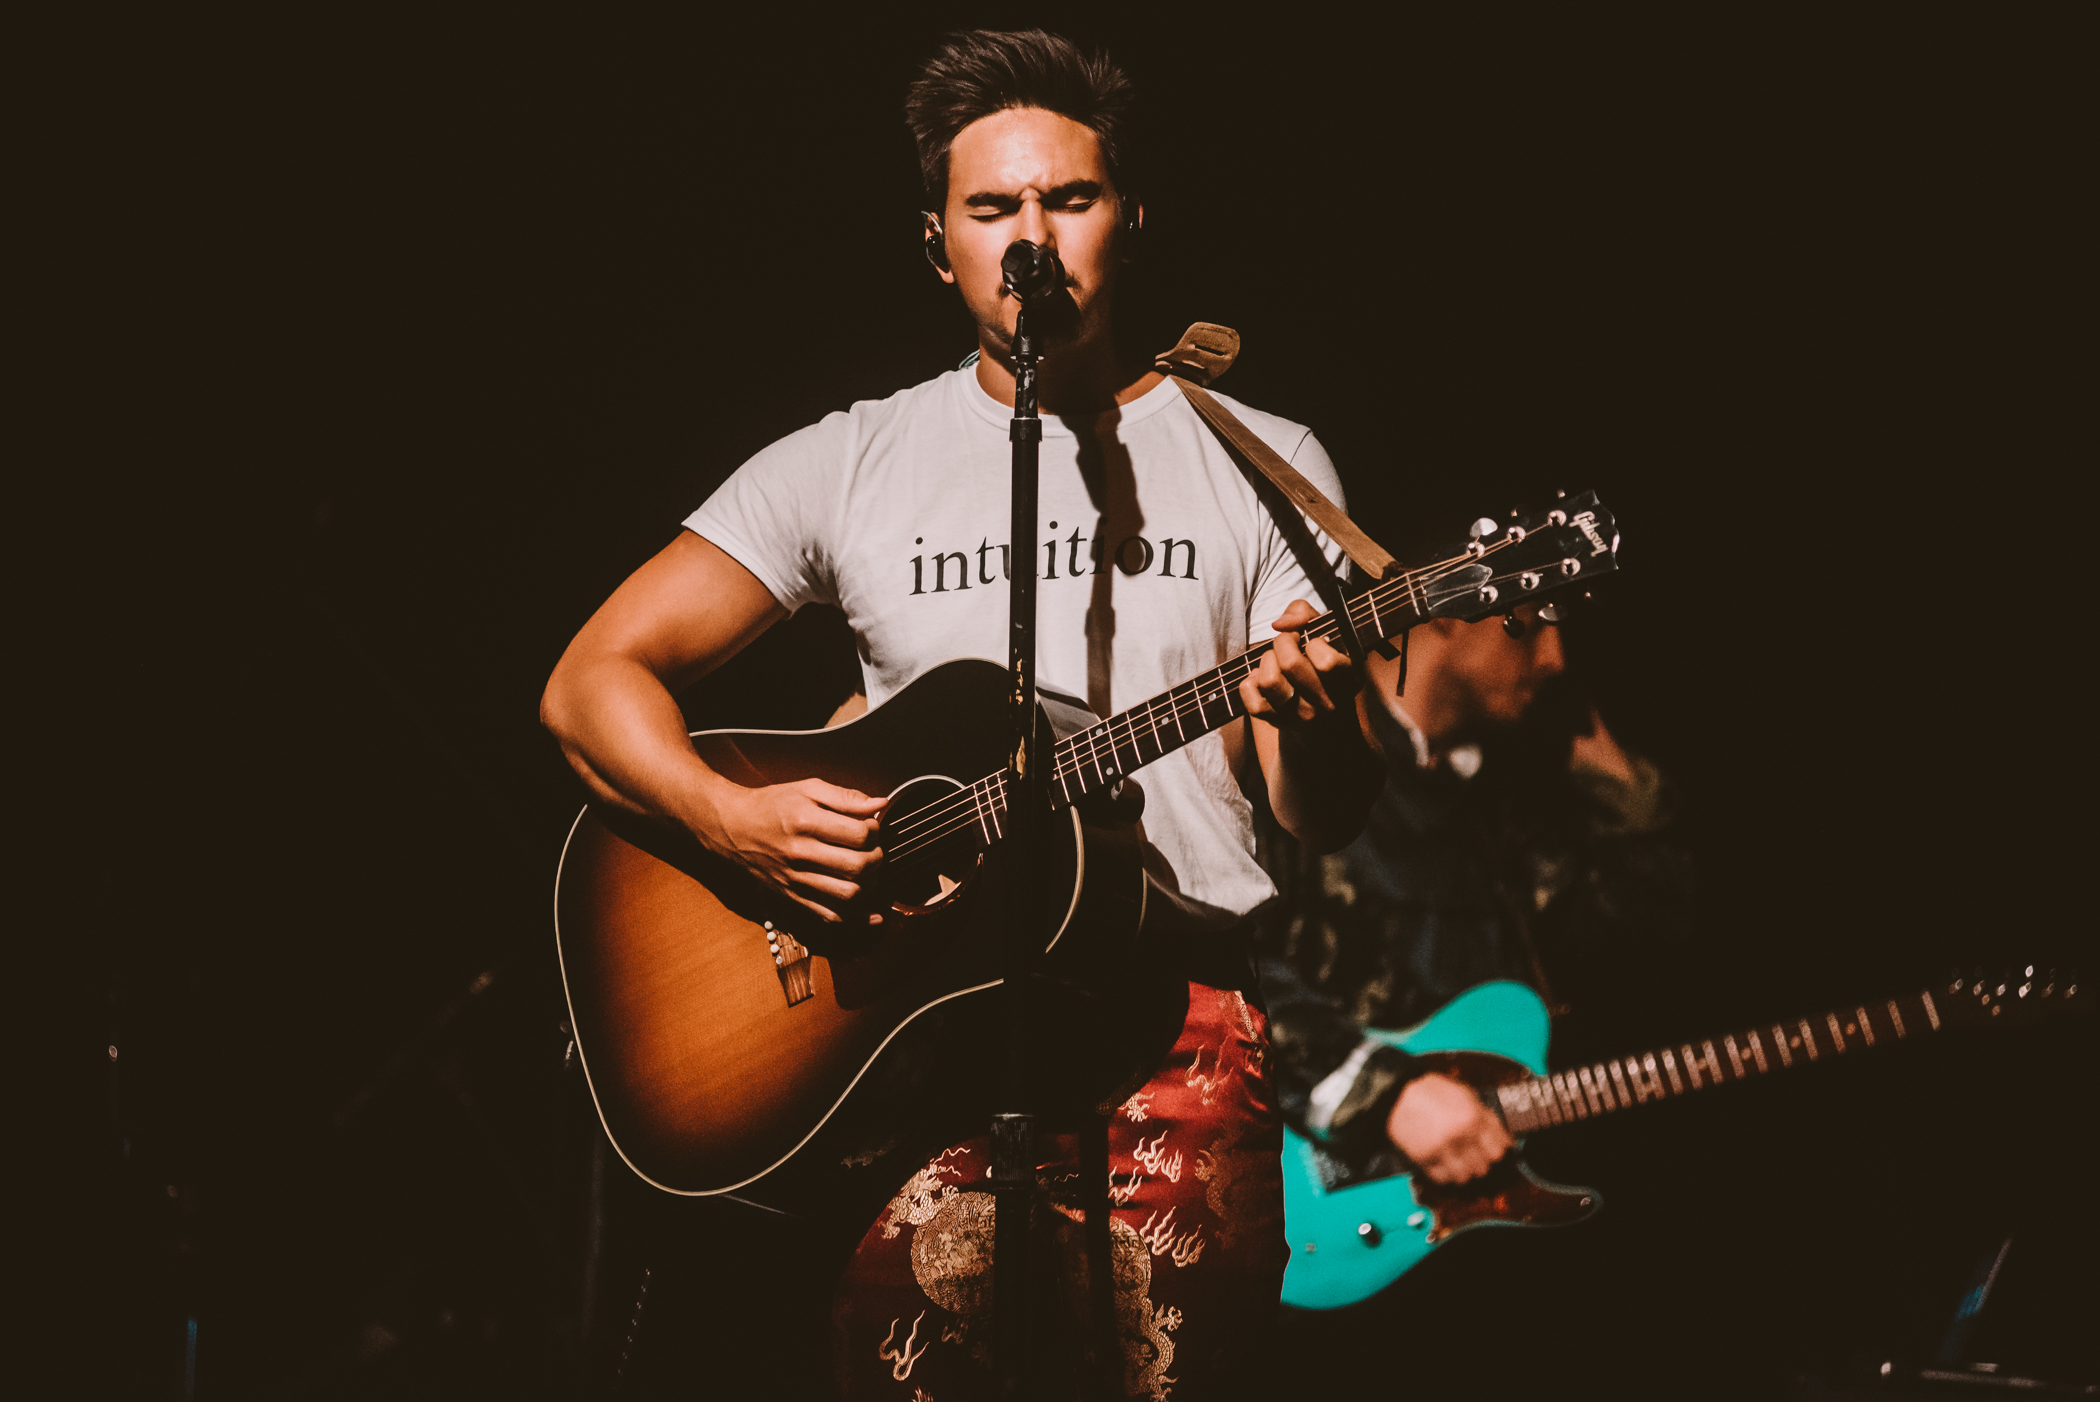 Tyler_Shaw-Venue-Timothy_Nguyen-20190131 (17 of 22).jpg